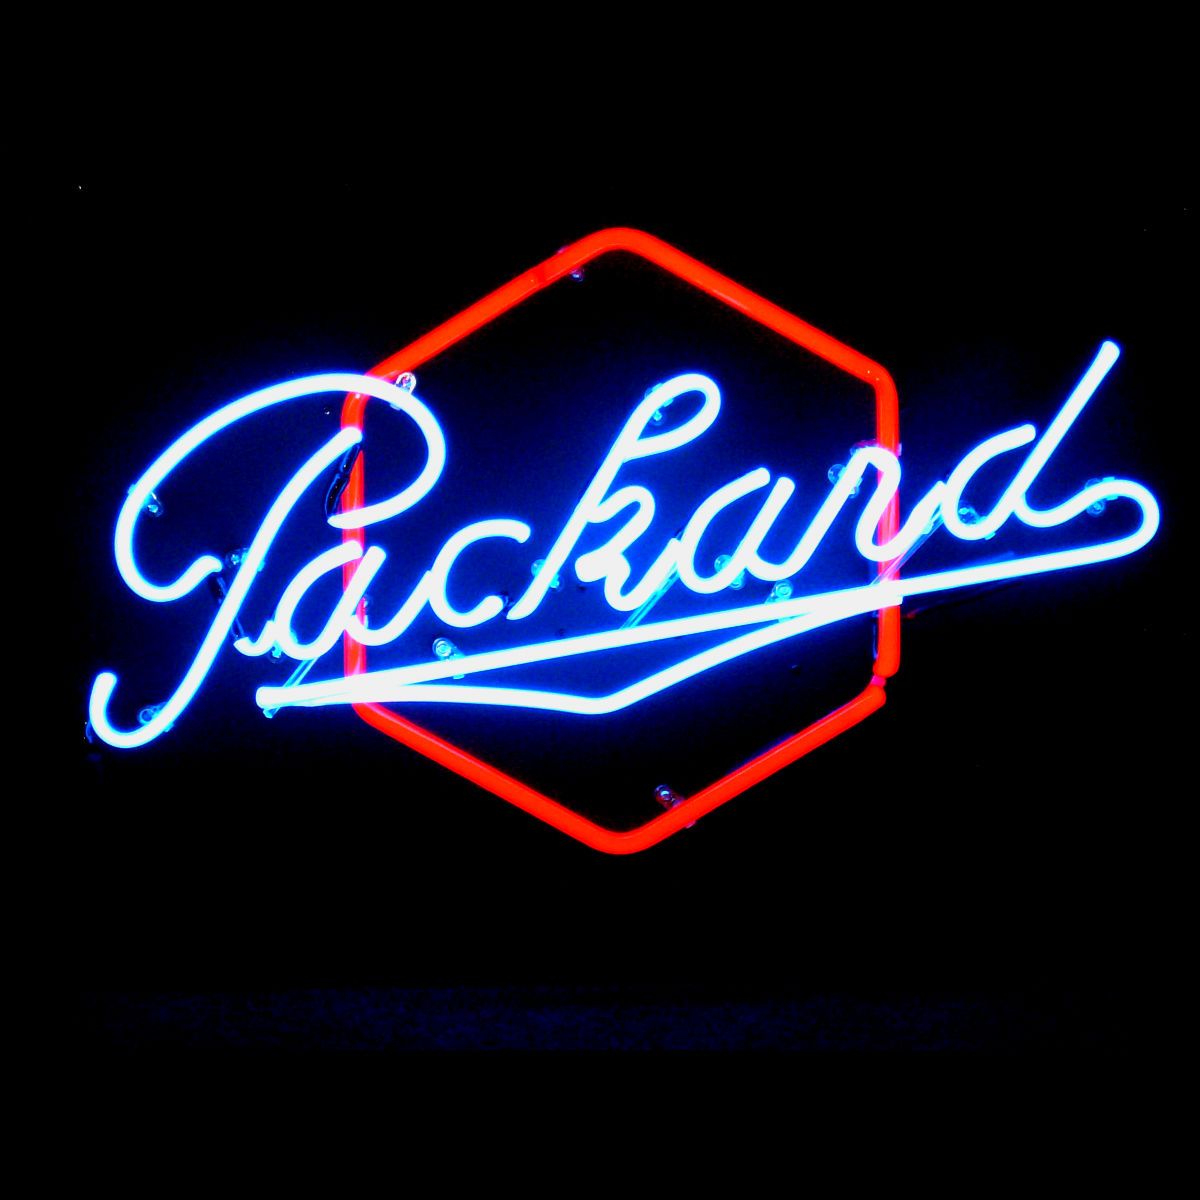 Packard Neon Sign with Hexagon.jpg